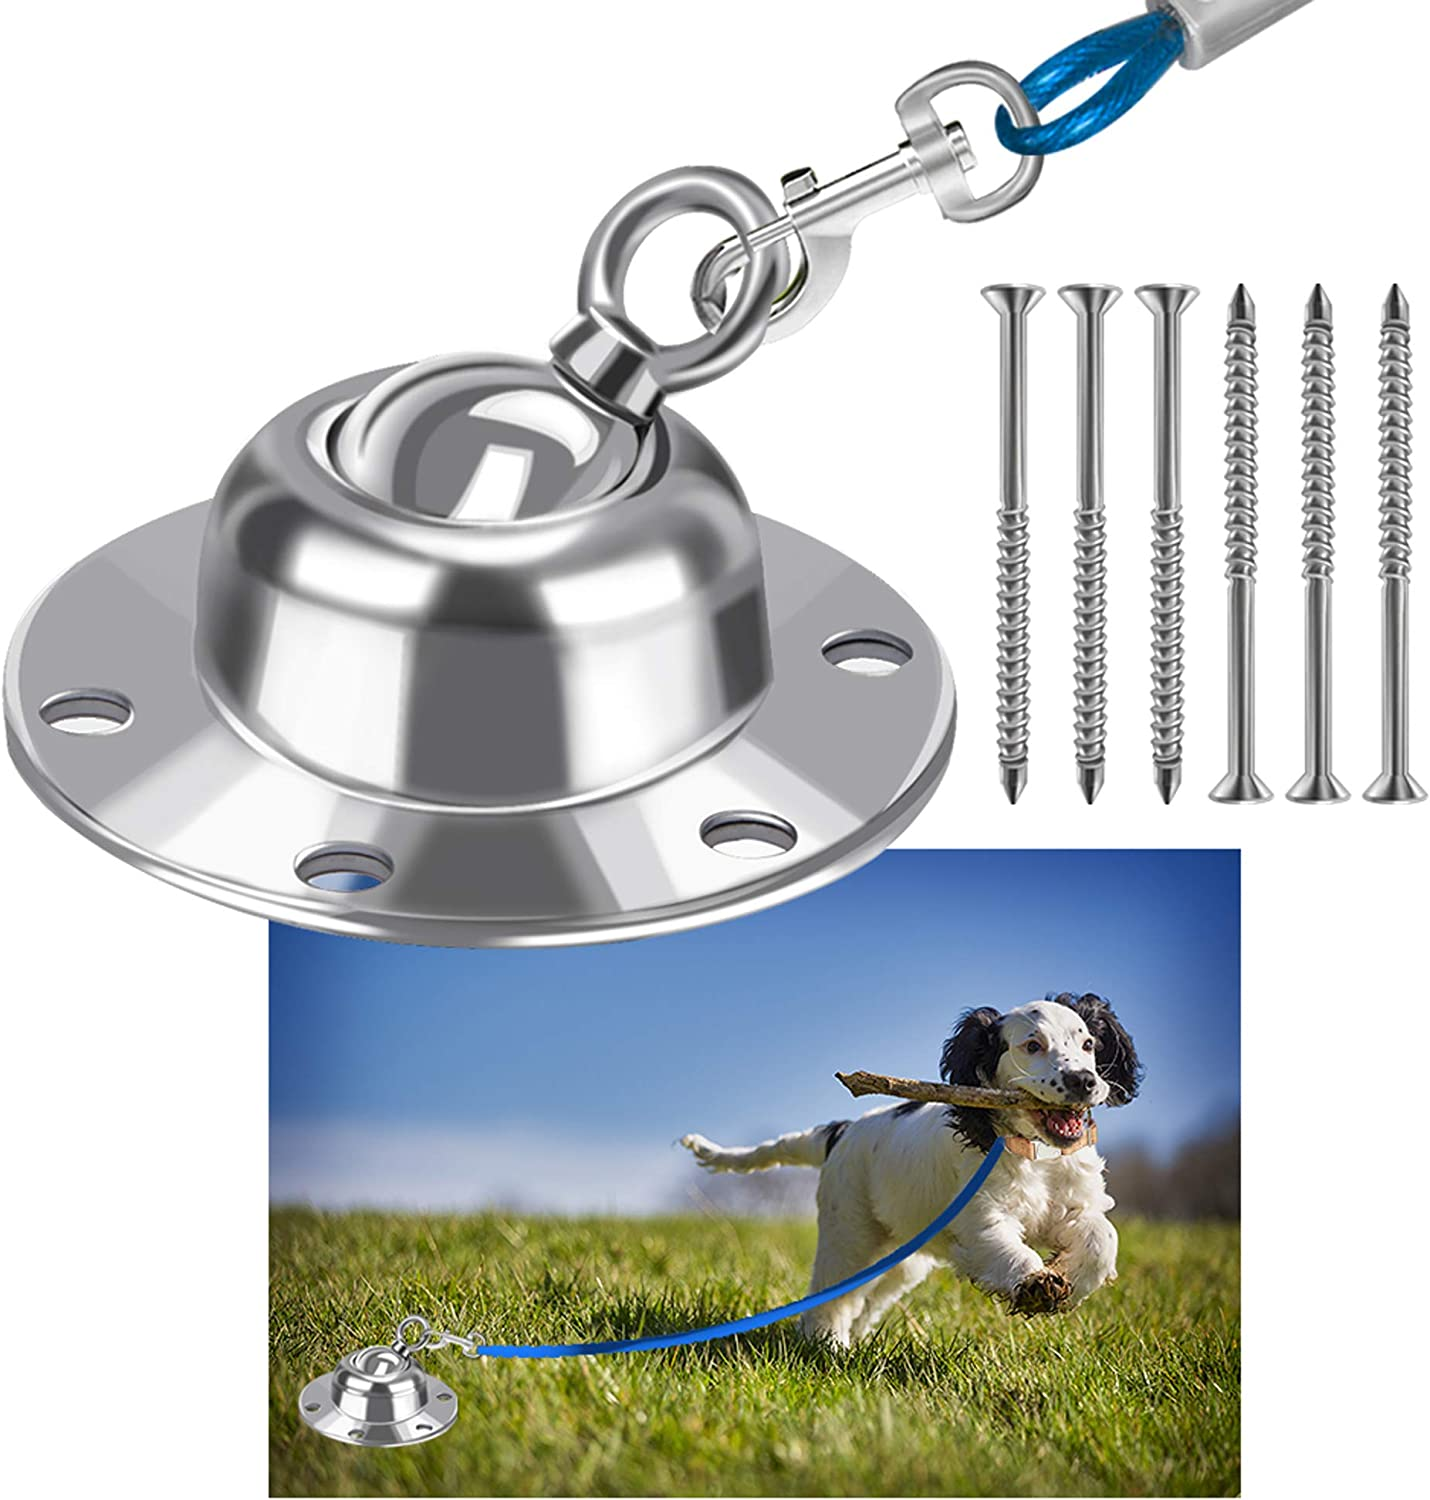 Highland Farms Select 360° Swivel Dog Tie Out Stake Dog Anchor - Heavy Duty Rust Proof Dog Yard Stake Holds 1000Lbs of Pull Force for Yard Camping Outdoor